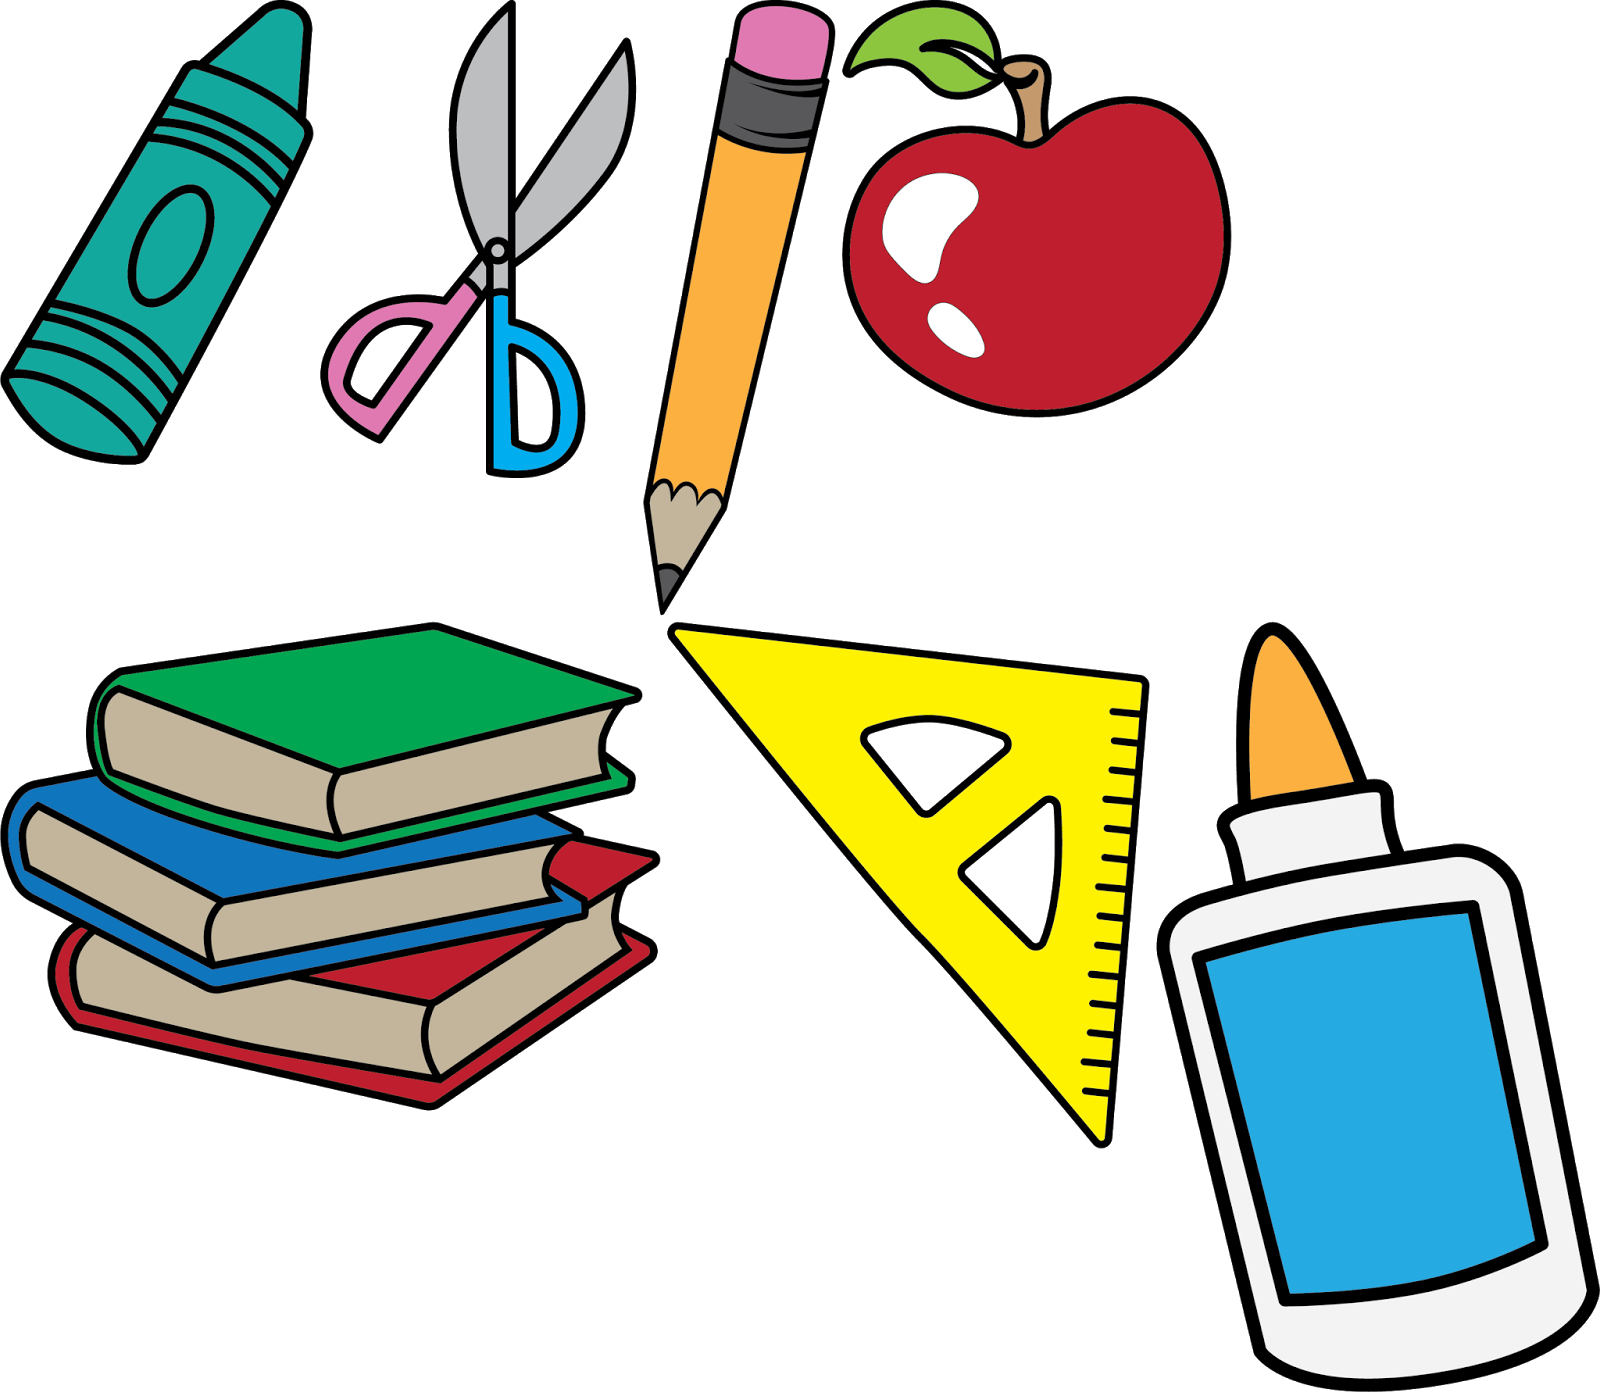 freeuse library Books and apple clipart.  back to school